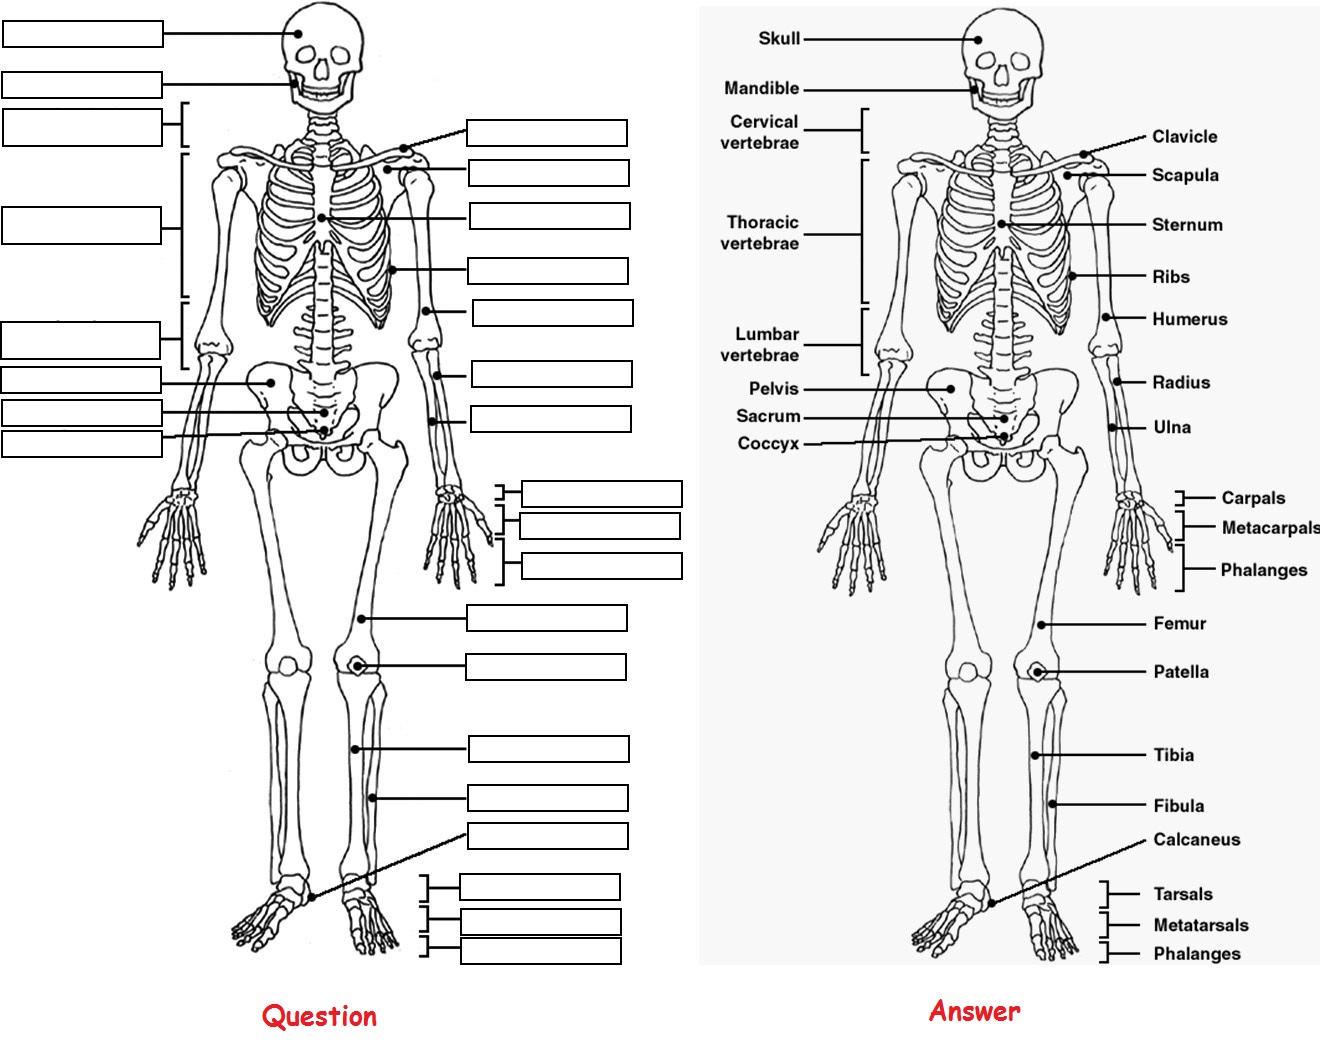 Skeleton Anatomy Coloring Pictures Label Question And Answer